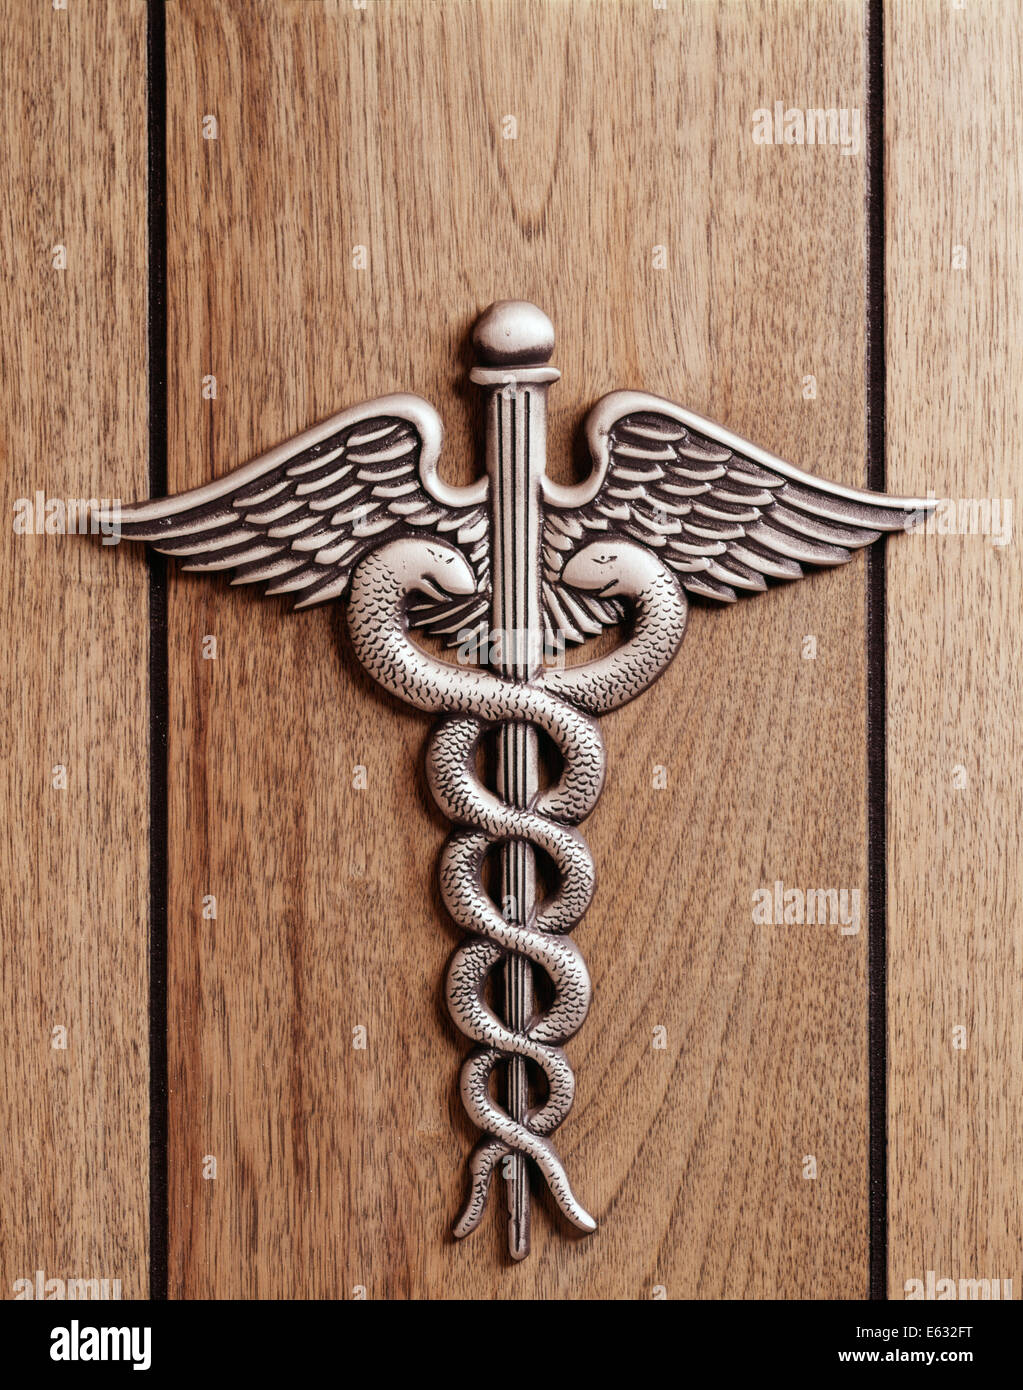 Caduceus Staff Of Hermes Stock Photos & Caduceus Staff Of ...